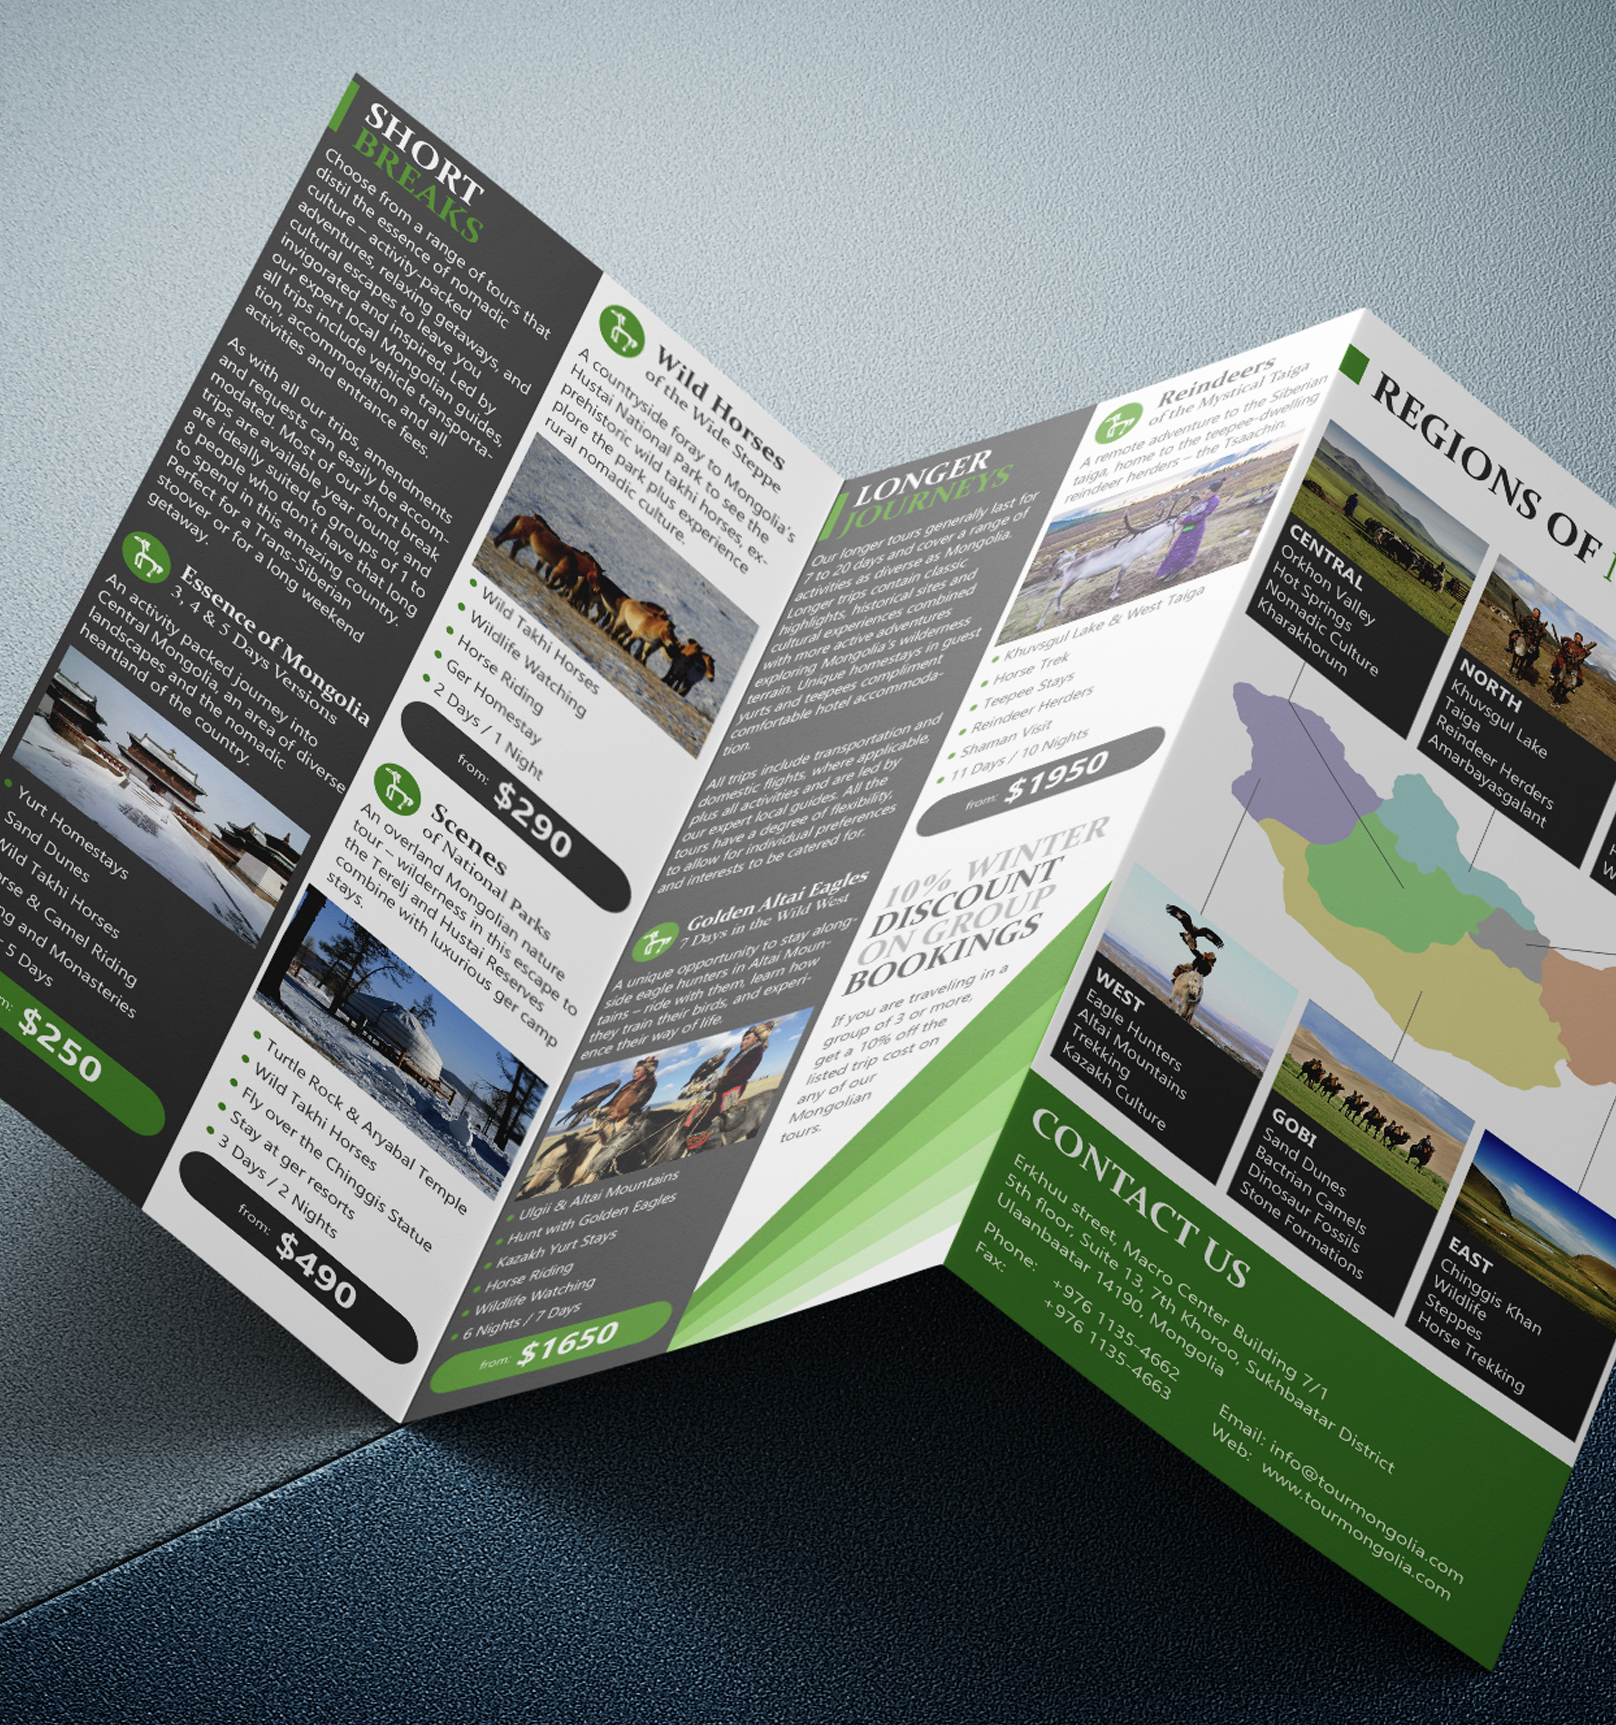 Leaflets and marketing collateral